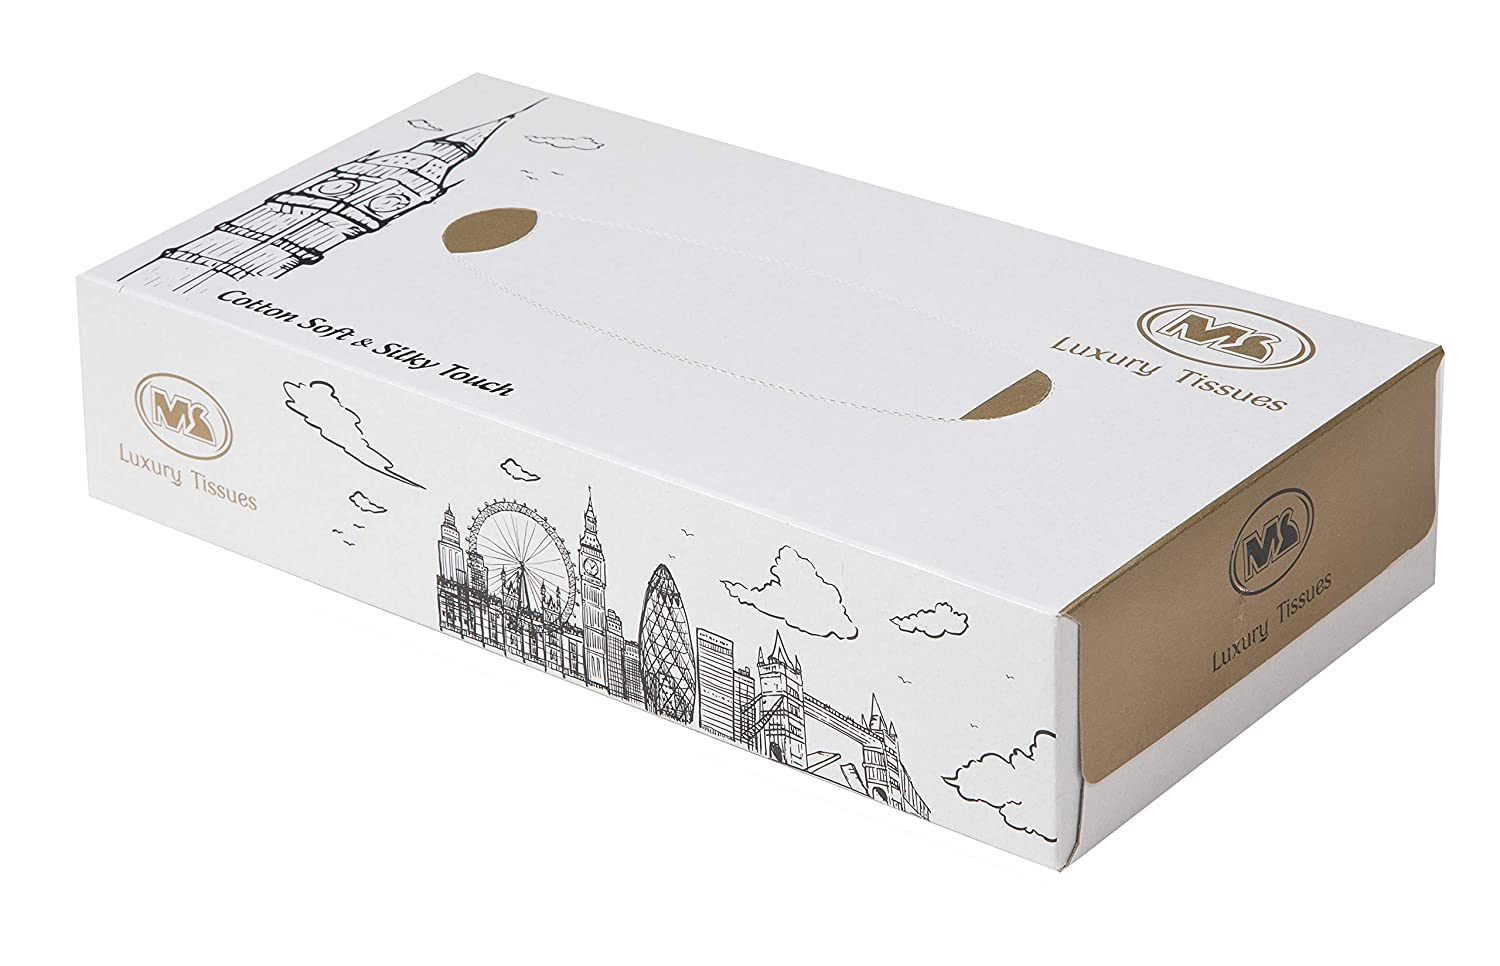 White//Gold//London- 100 Sheets by MS International Investment Ltd 1200 Sheets 2-Ply Facial Tissues in Bulk Pack of 12